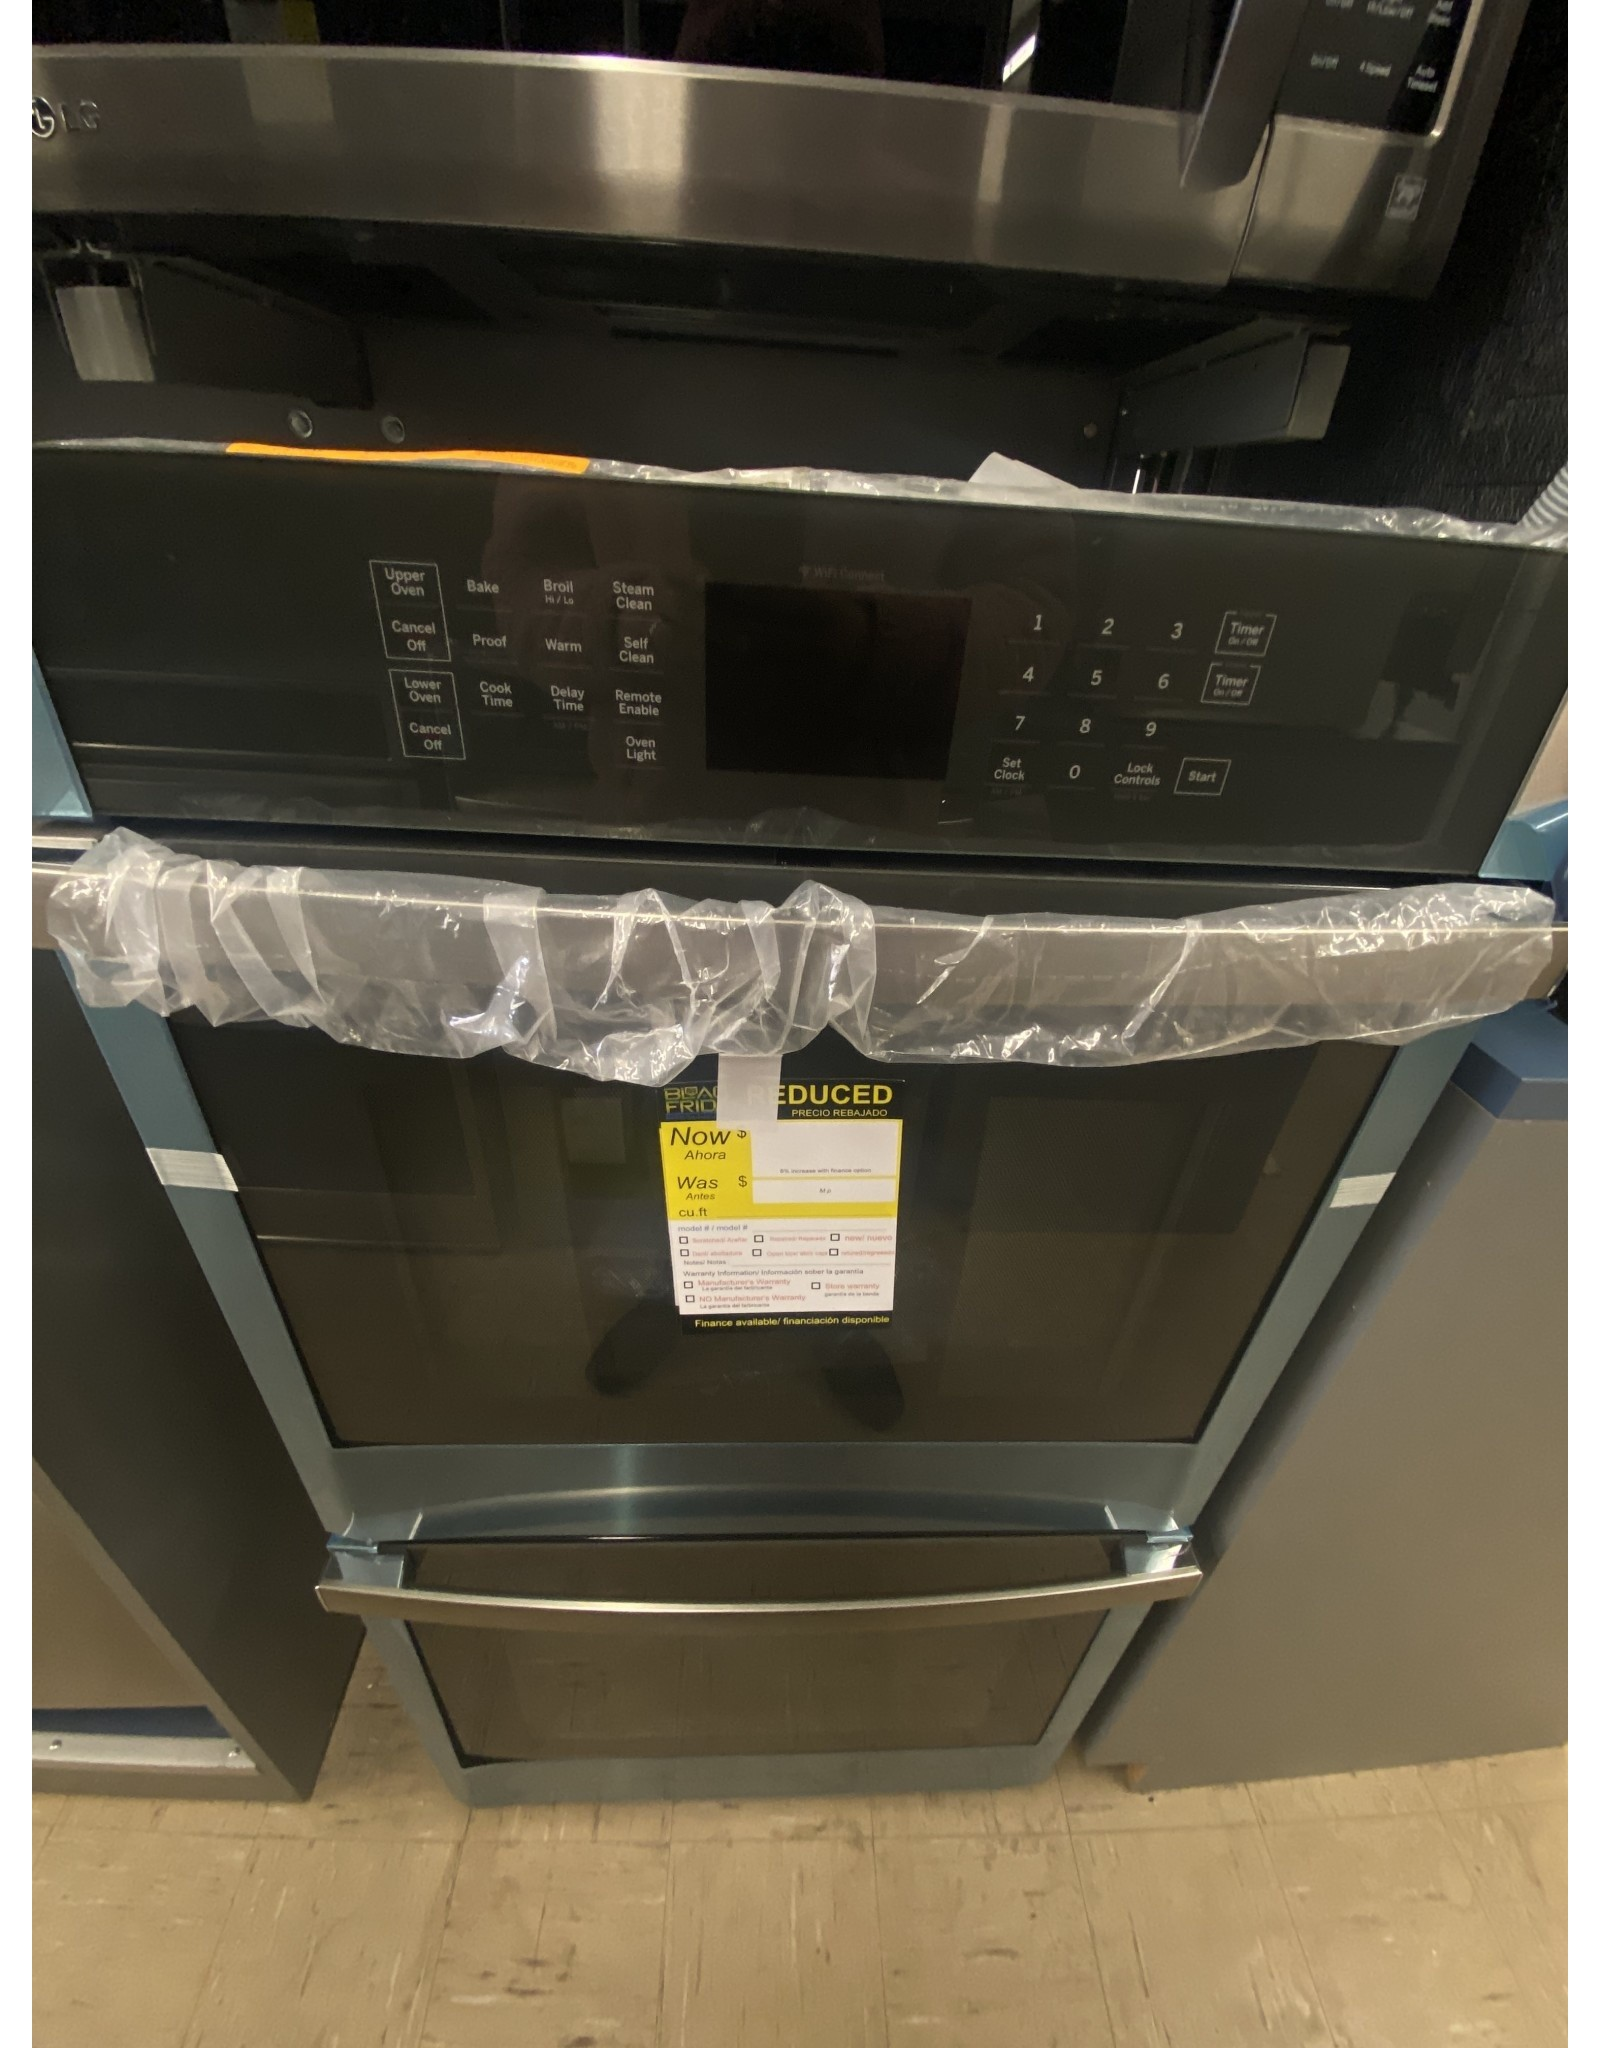 GE JKD3000SNSS 27 in. Smart Double Electric Wall Oven Self-Cleaning with Steam in Stainless Steel